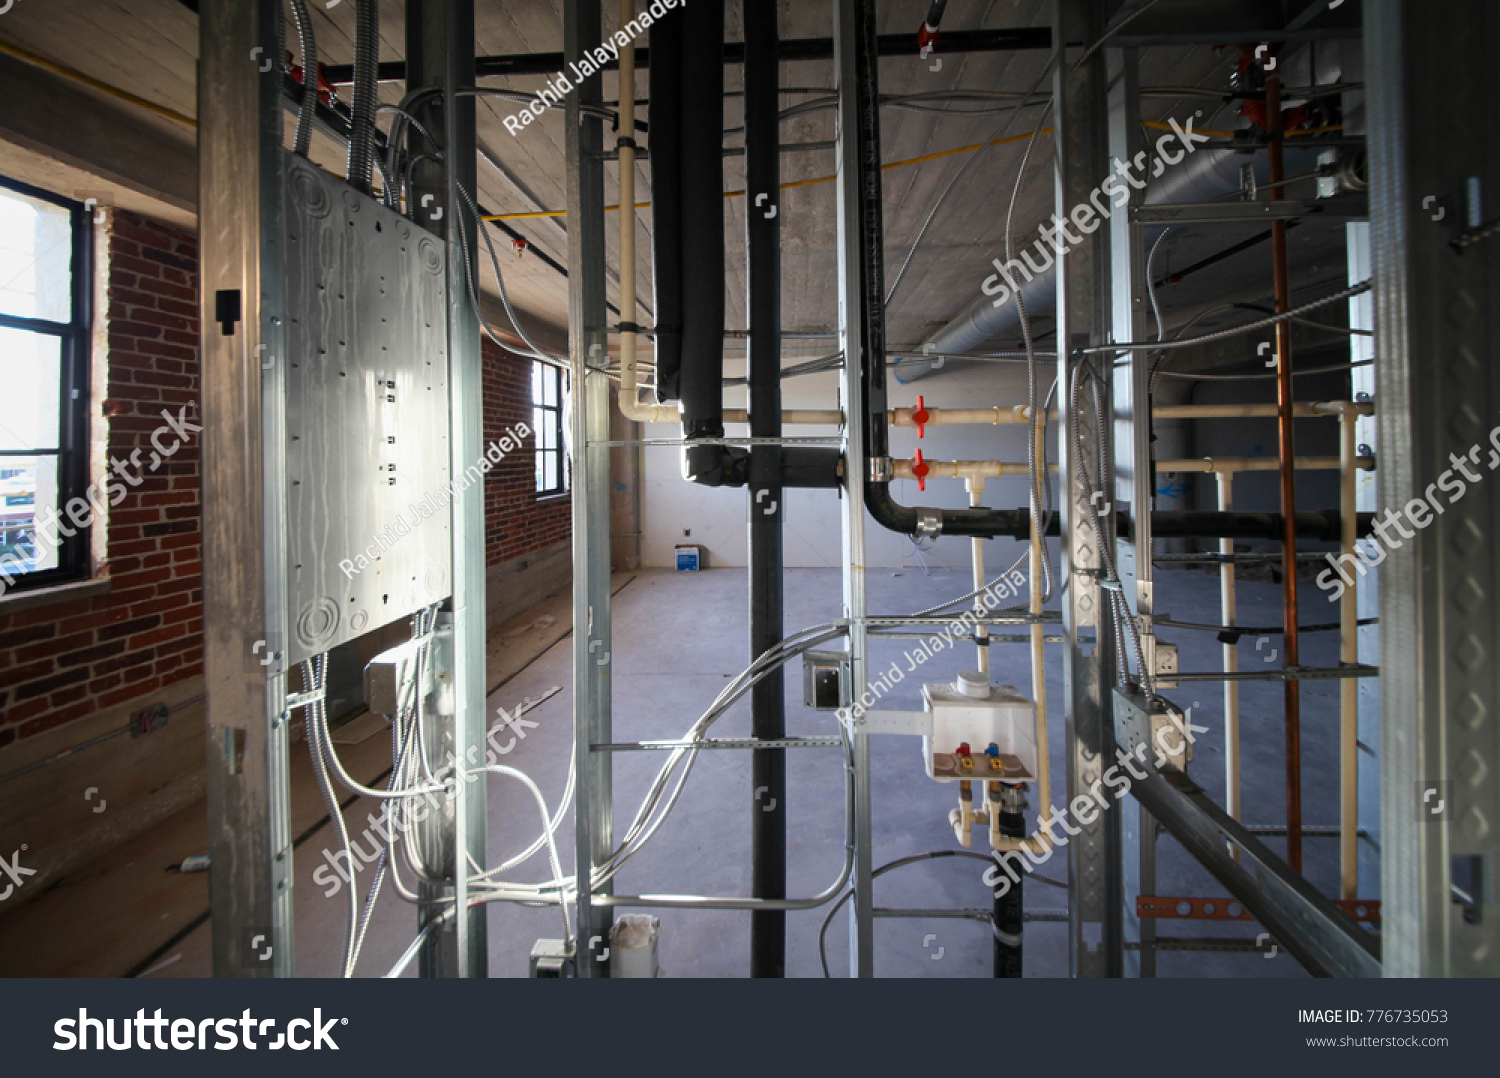 hight resolution of electrical wiring with plumbing and piping work inside metal stud wall